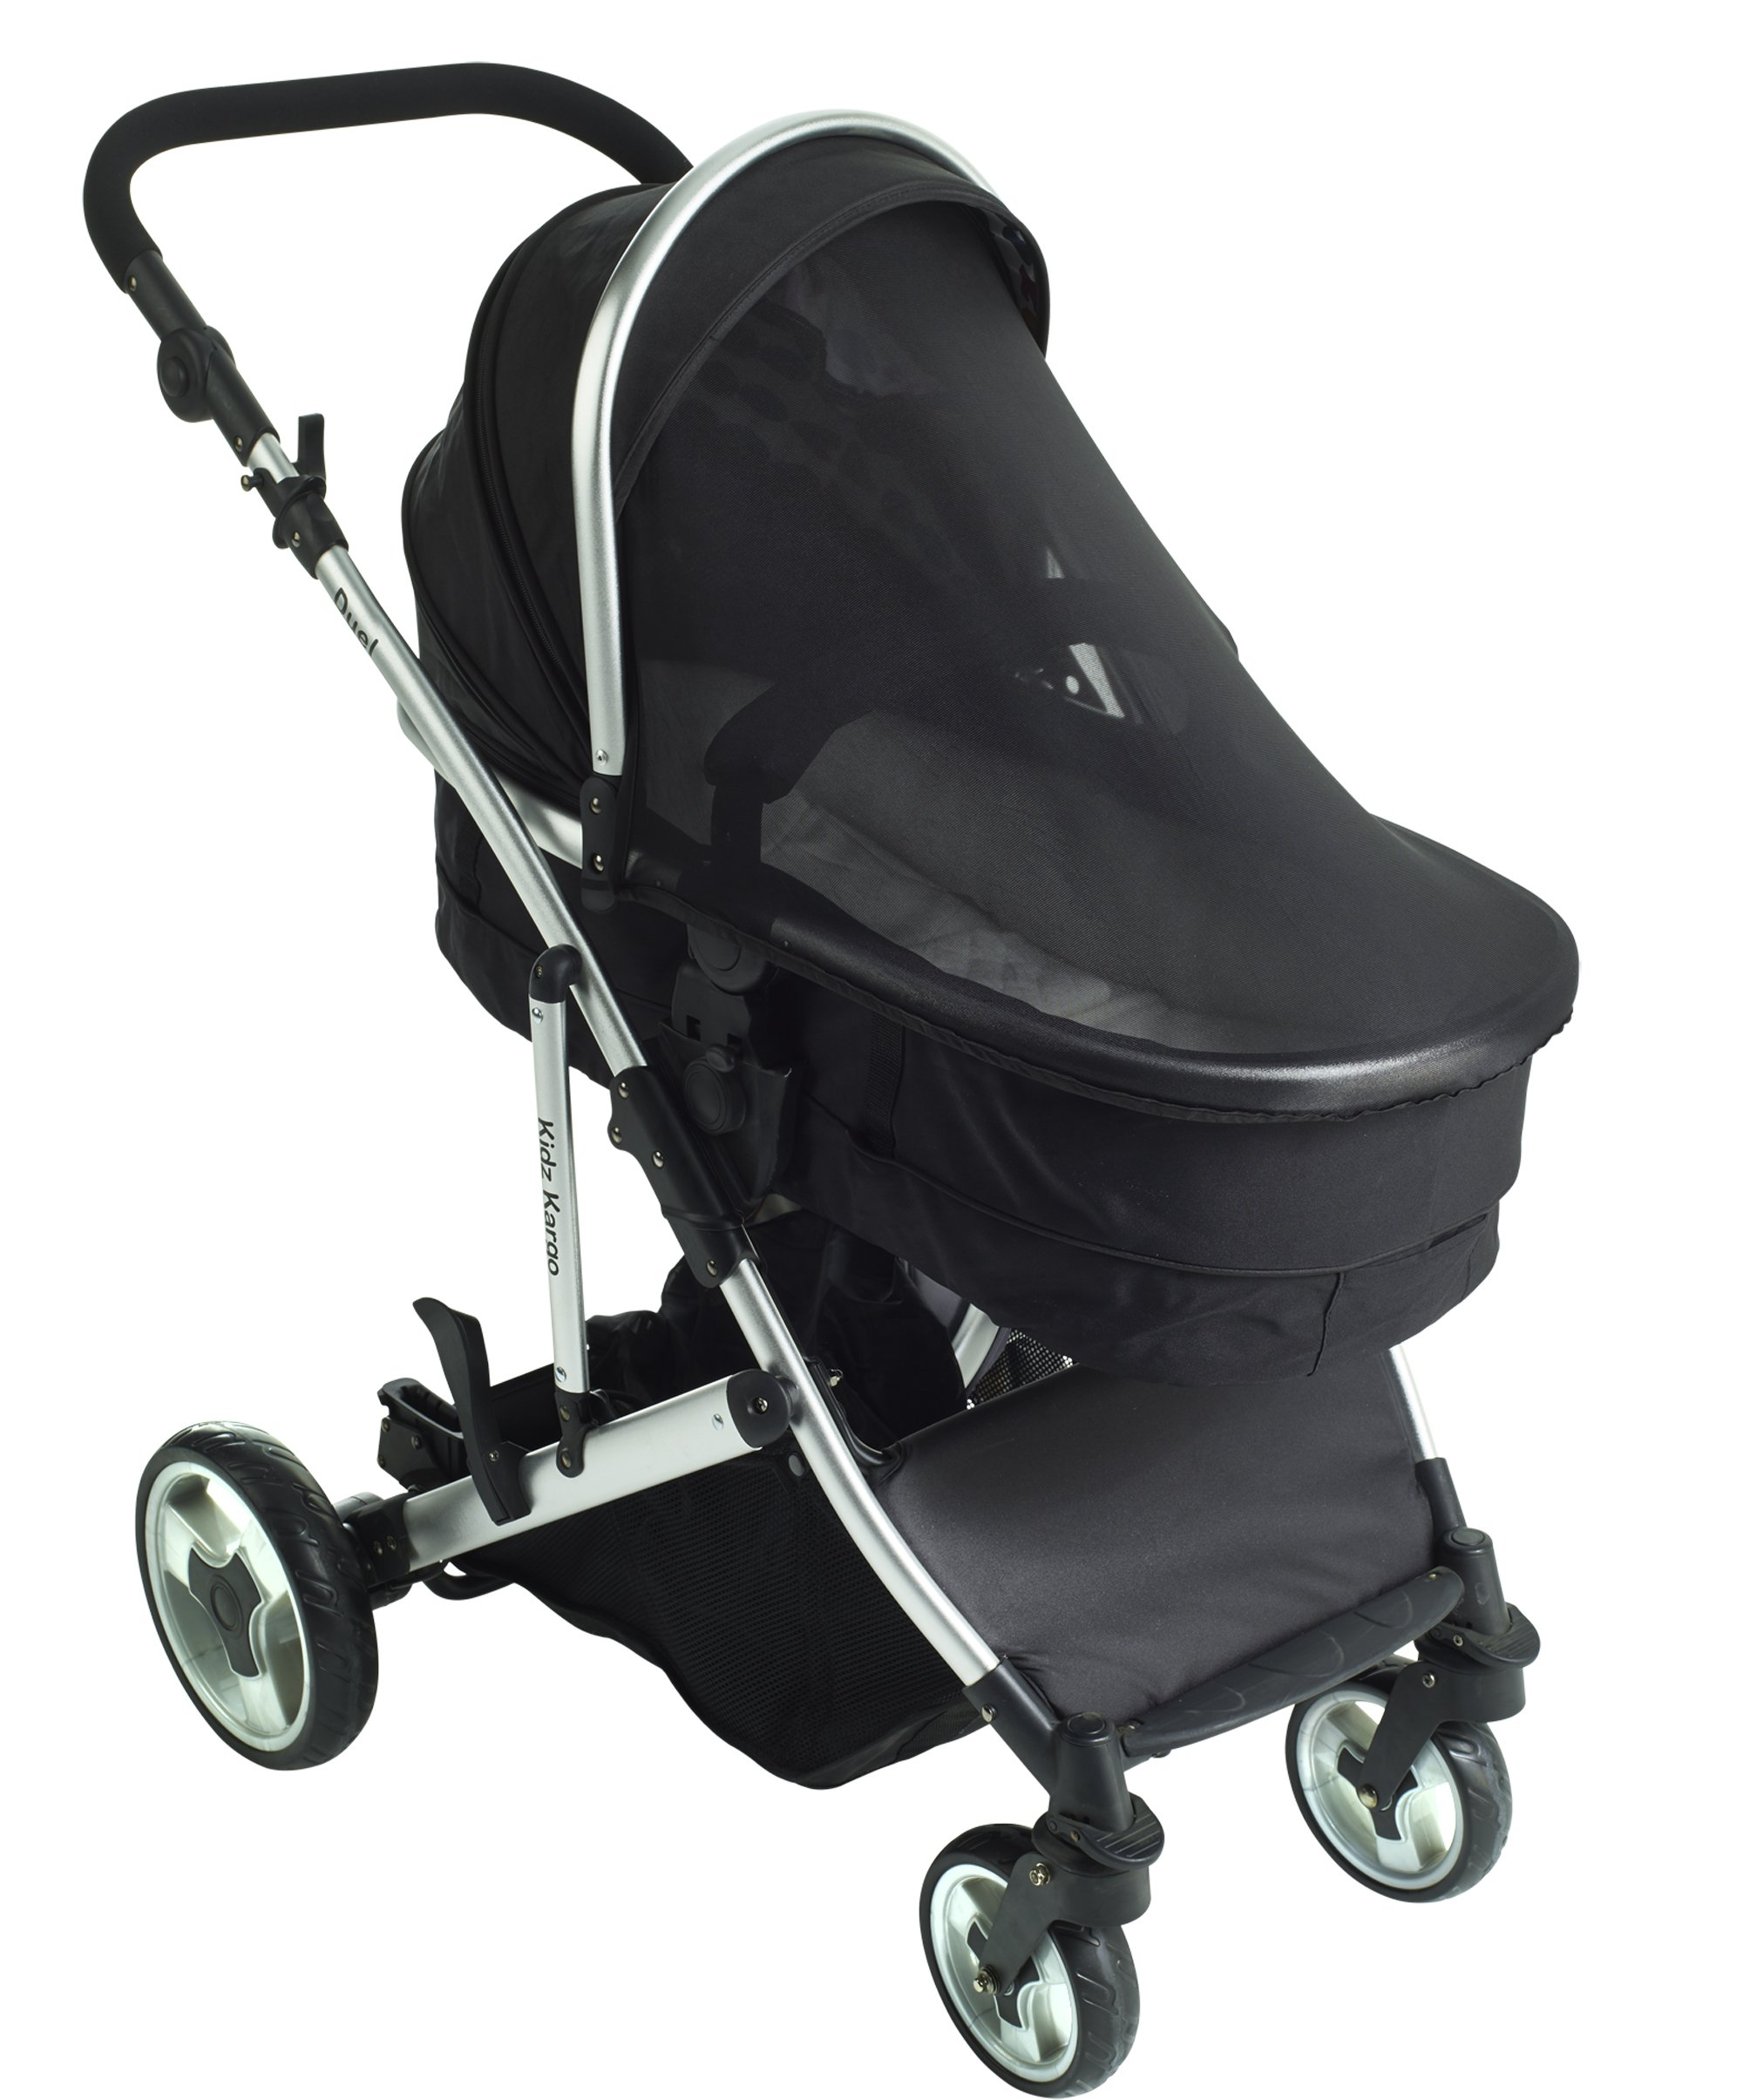 Duel combo Double pushchair with carrycot pram includes 2 FREE footmuffs Newborn & toddler, tandem travel system buggy convertible carrycot to seat unit and toddler/child seat unit, Midnight Black by Kids Kargo Kids Kargo The carrycot when converted to seat unit, can be rear or forward facing. Versatile. Suitable for Newborn and toddler: Carrycot with mattress and soft lining, which zip off. Remove lining and lid, when baby grows out of carrycot mode. Converts to a full sized seat unit, with 5 point harness. Bucket seat unit for toddler or baby over 6 months sits in forward facing bottom position , or forward and rear facing at the top, if car seat used at the bottom. 6